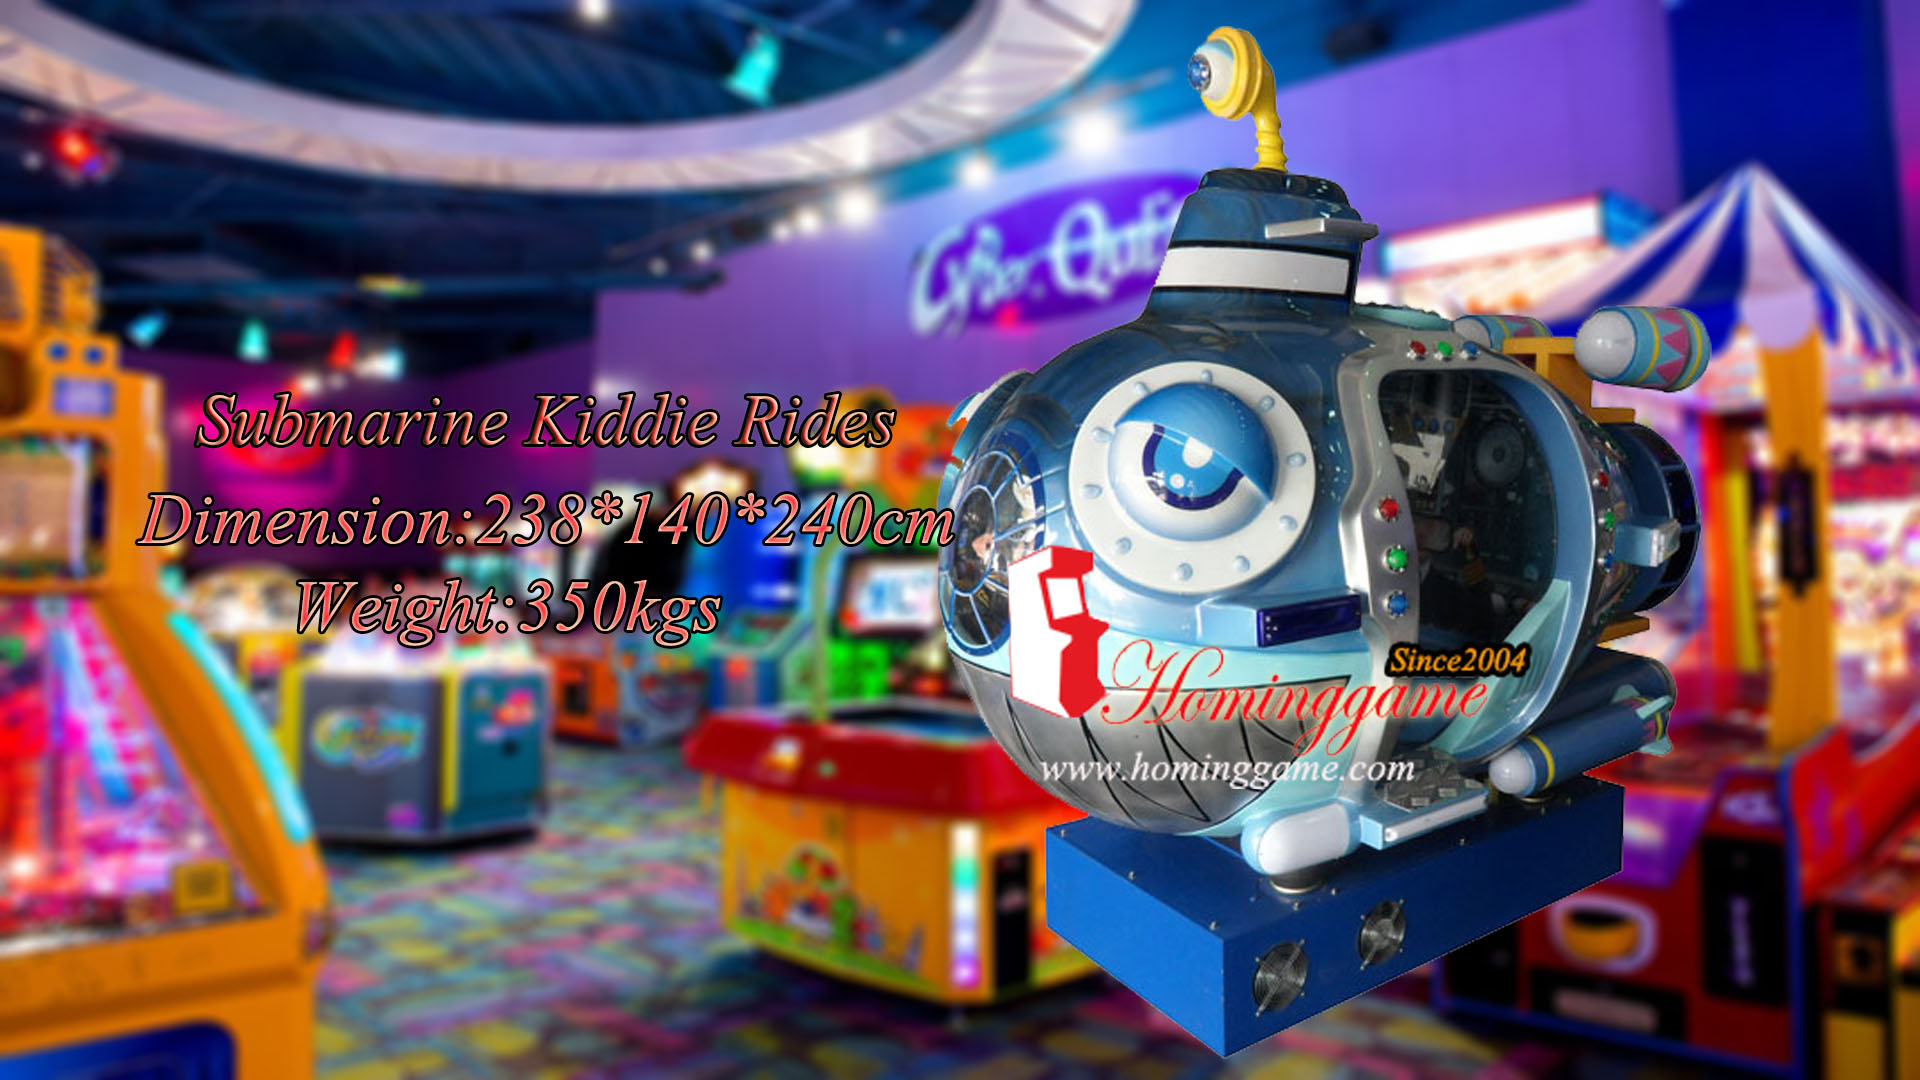 HomingGame Submarine Coin Operated  Kiddie Ride Game Equipment,kiddie Sub Arcade RidesKiddie Boat,Children Rides,Arcade Rides,Coin Operated Kiddei Rides,Amusement park rides,Kids Rides,Game Machine,Arcade Game Machine,Coin Operated Game Machine,Amusement Park Game Equipment,Entertainment Game Machine,Electrical Slot Game Machine,Indoor Game Machine,Kids Game Center Game Machine,Game Equipment